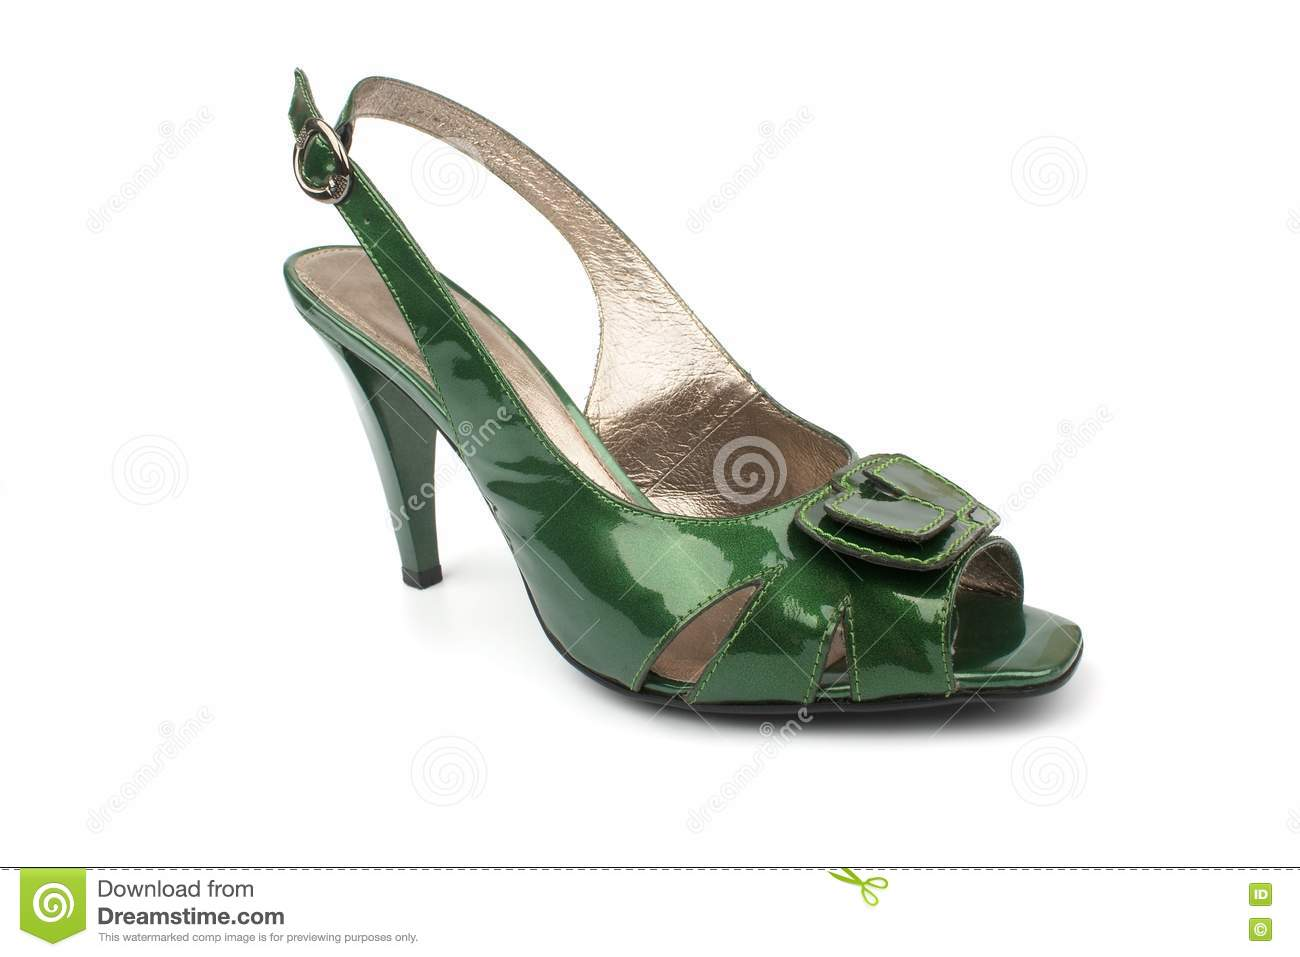 Green High Heels Shoe isolated on white background